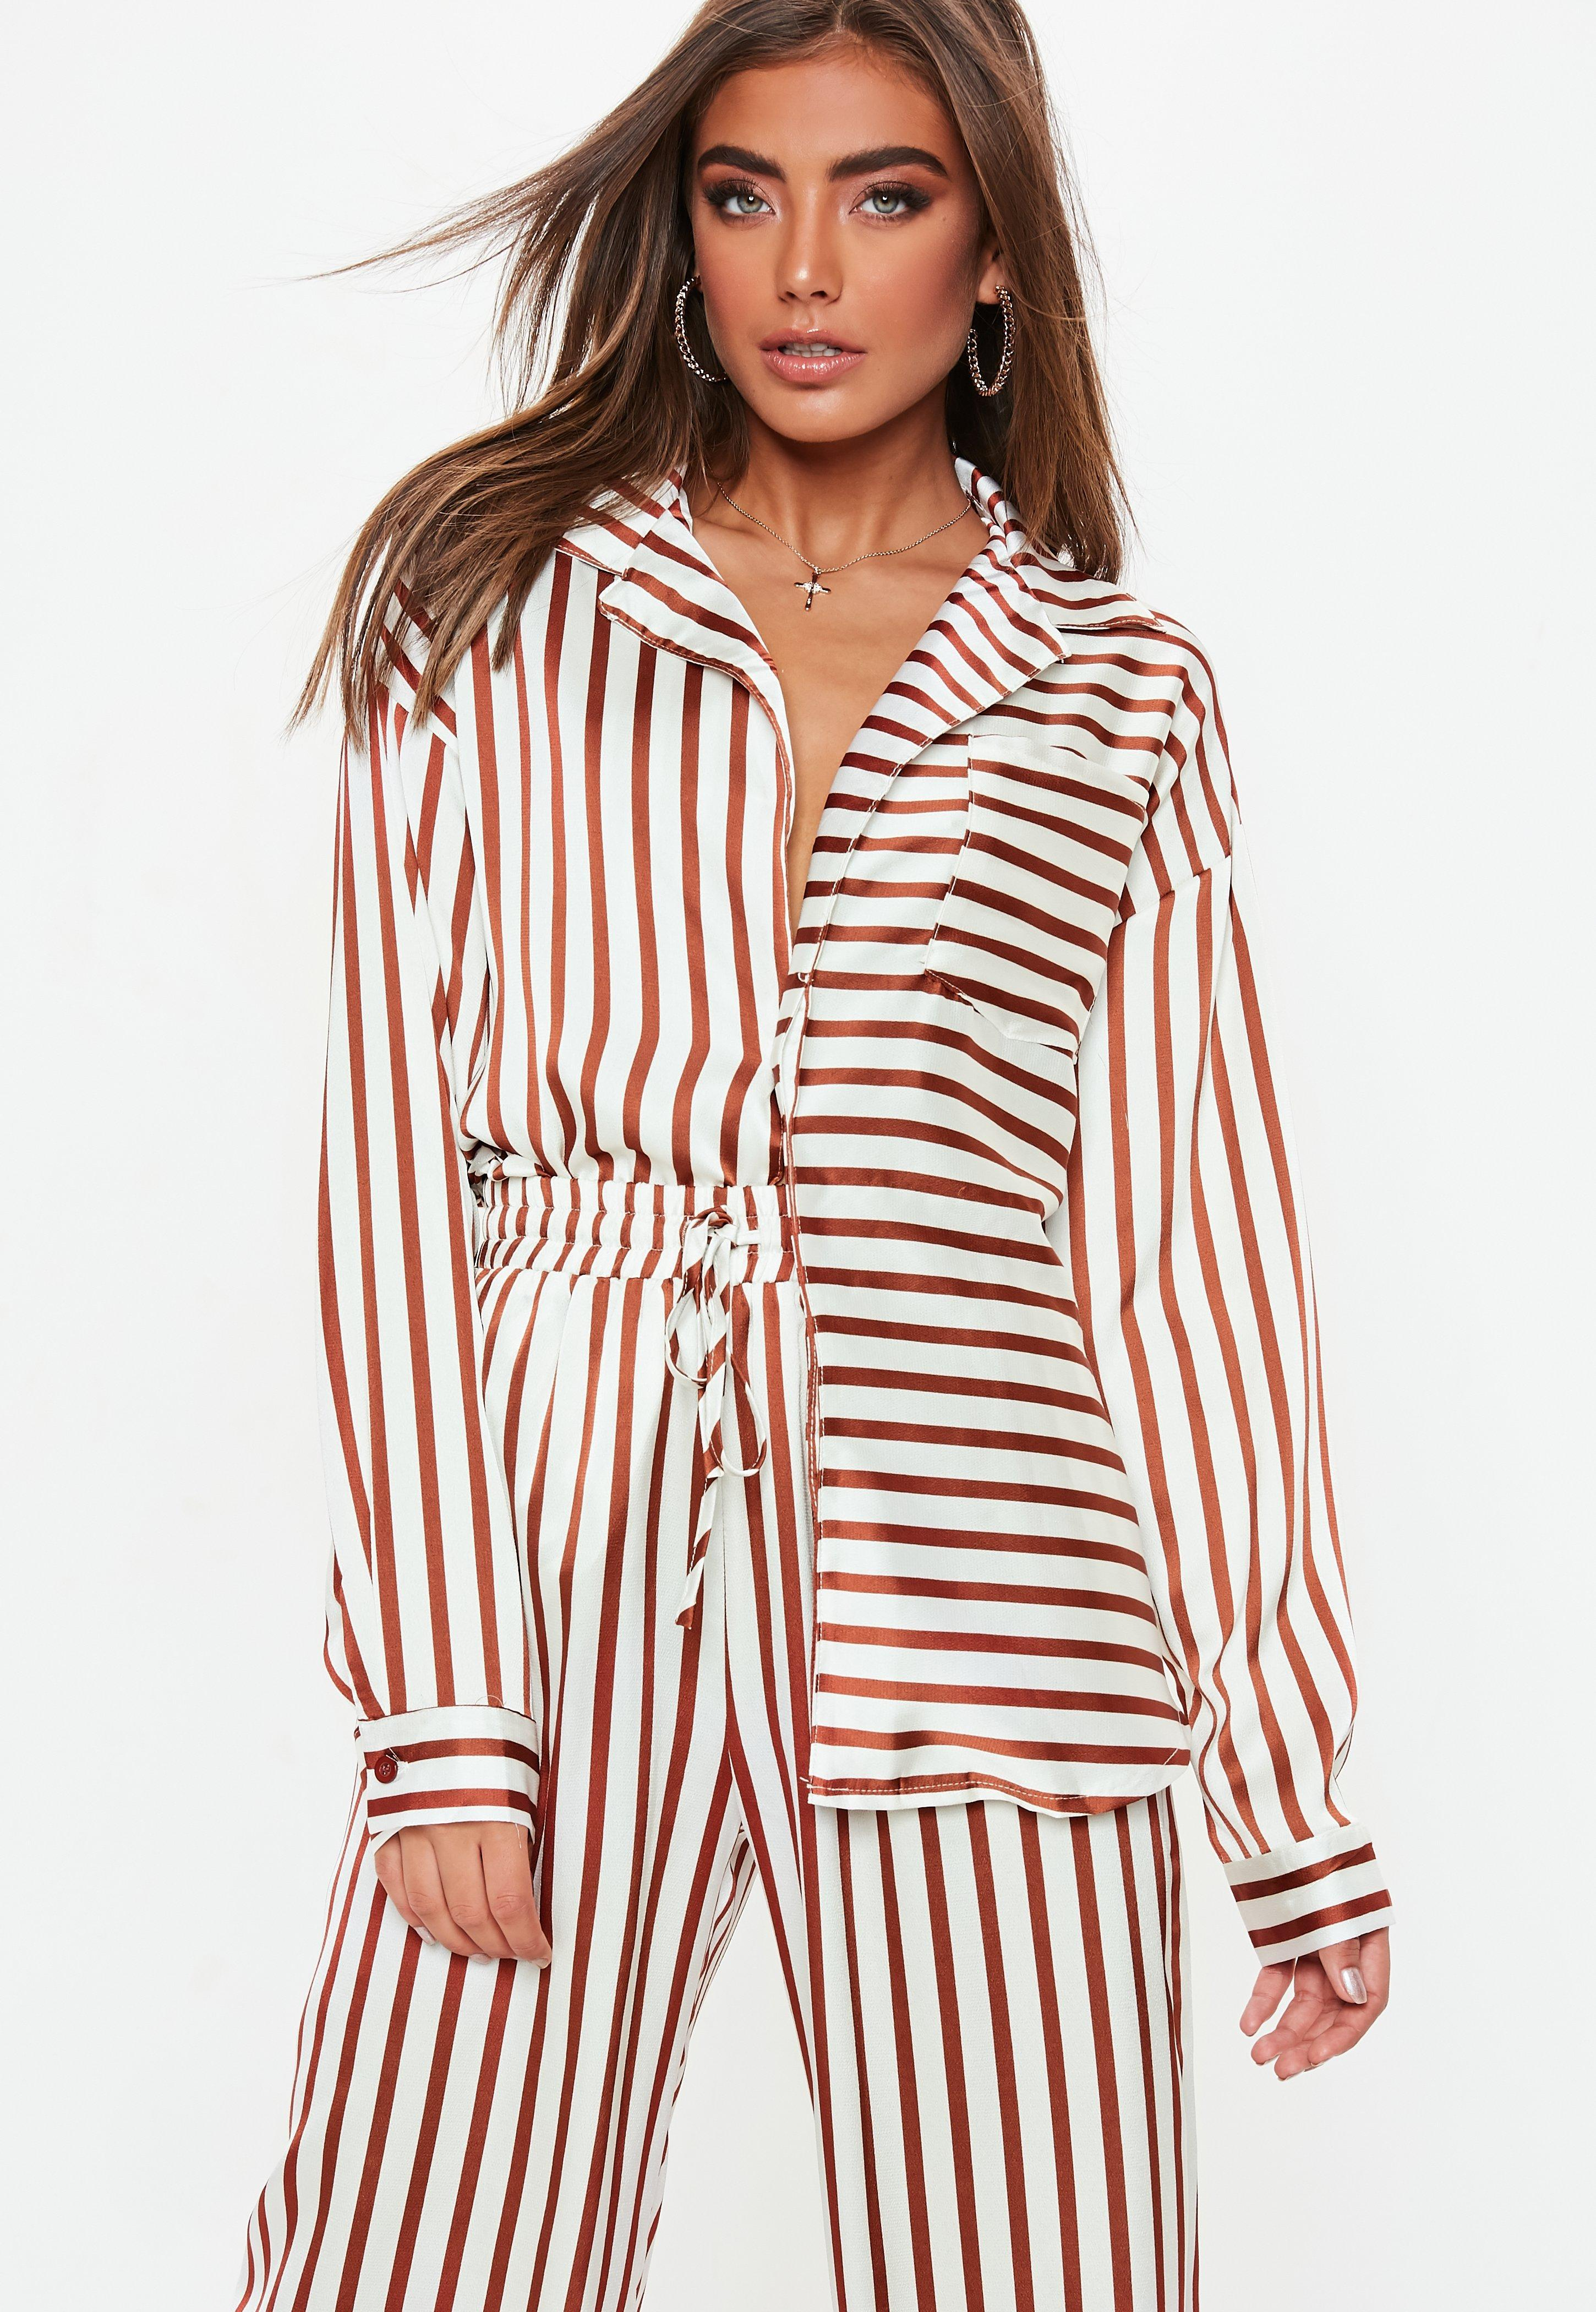 ad09c4b867 Missguided White Striped Oversized Satin Shirt in White - Lyst